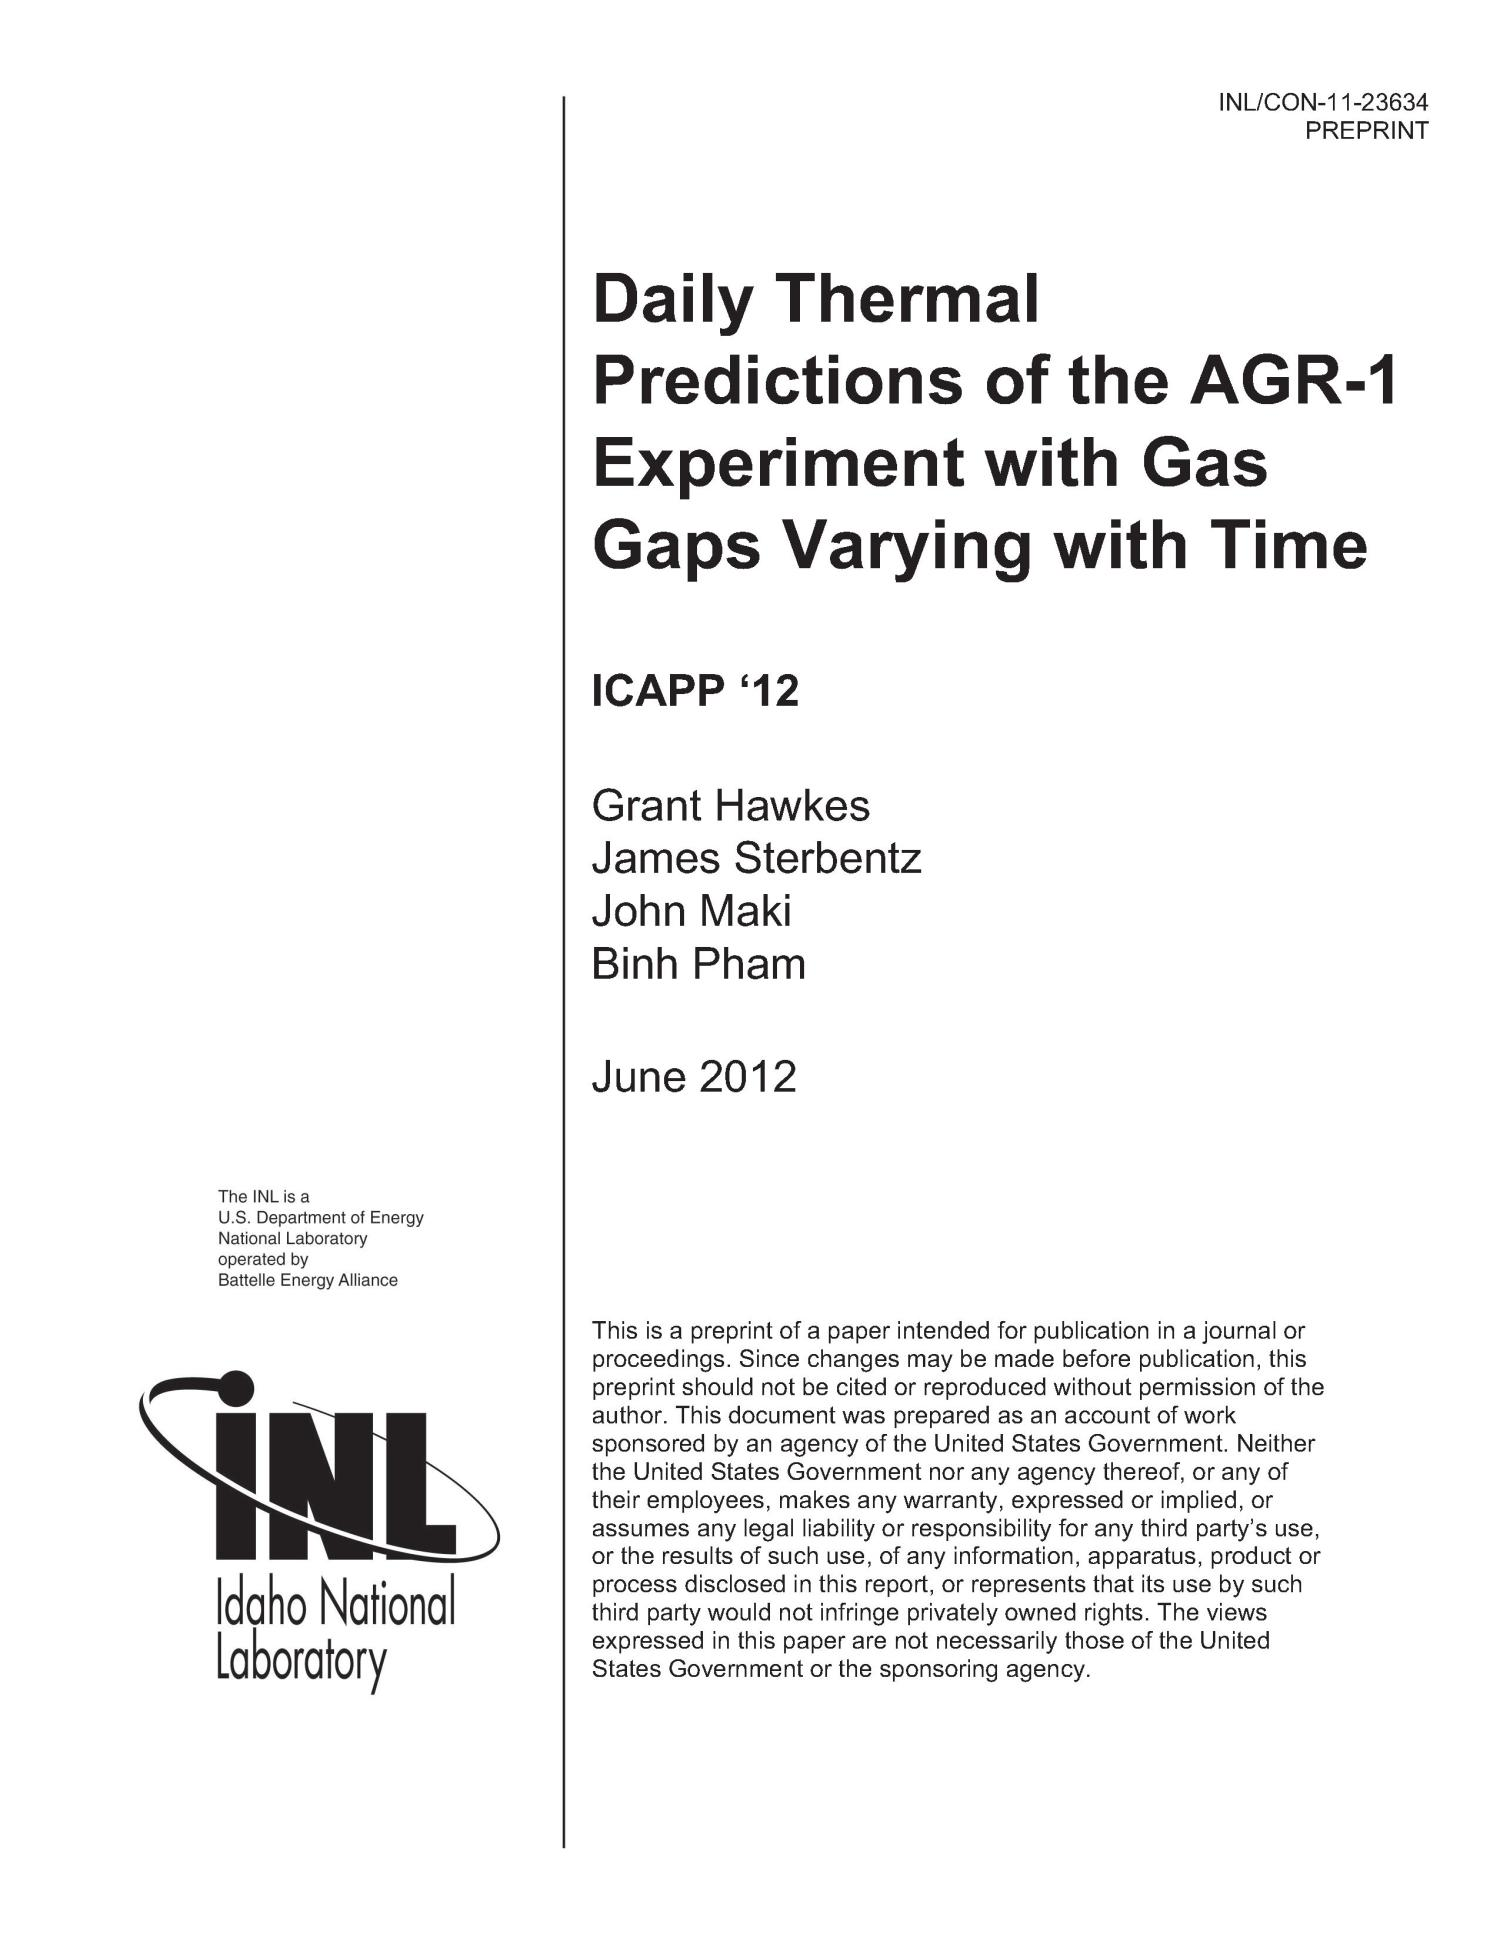 Daily Thermal Predictions of the AGR-1 Experiment with Gas Gaps Varying with Time                                                                                                      [Sequence #]: 1 of 13